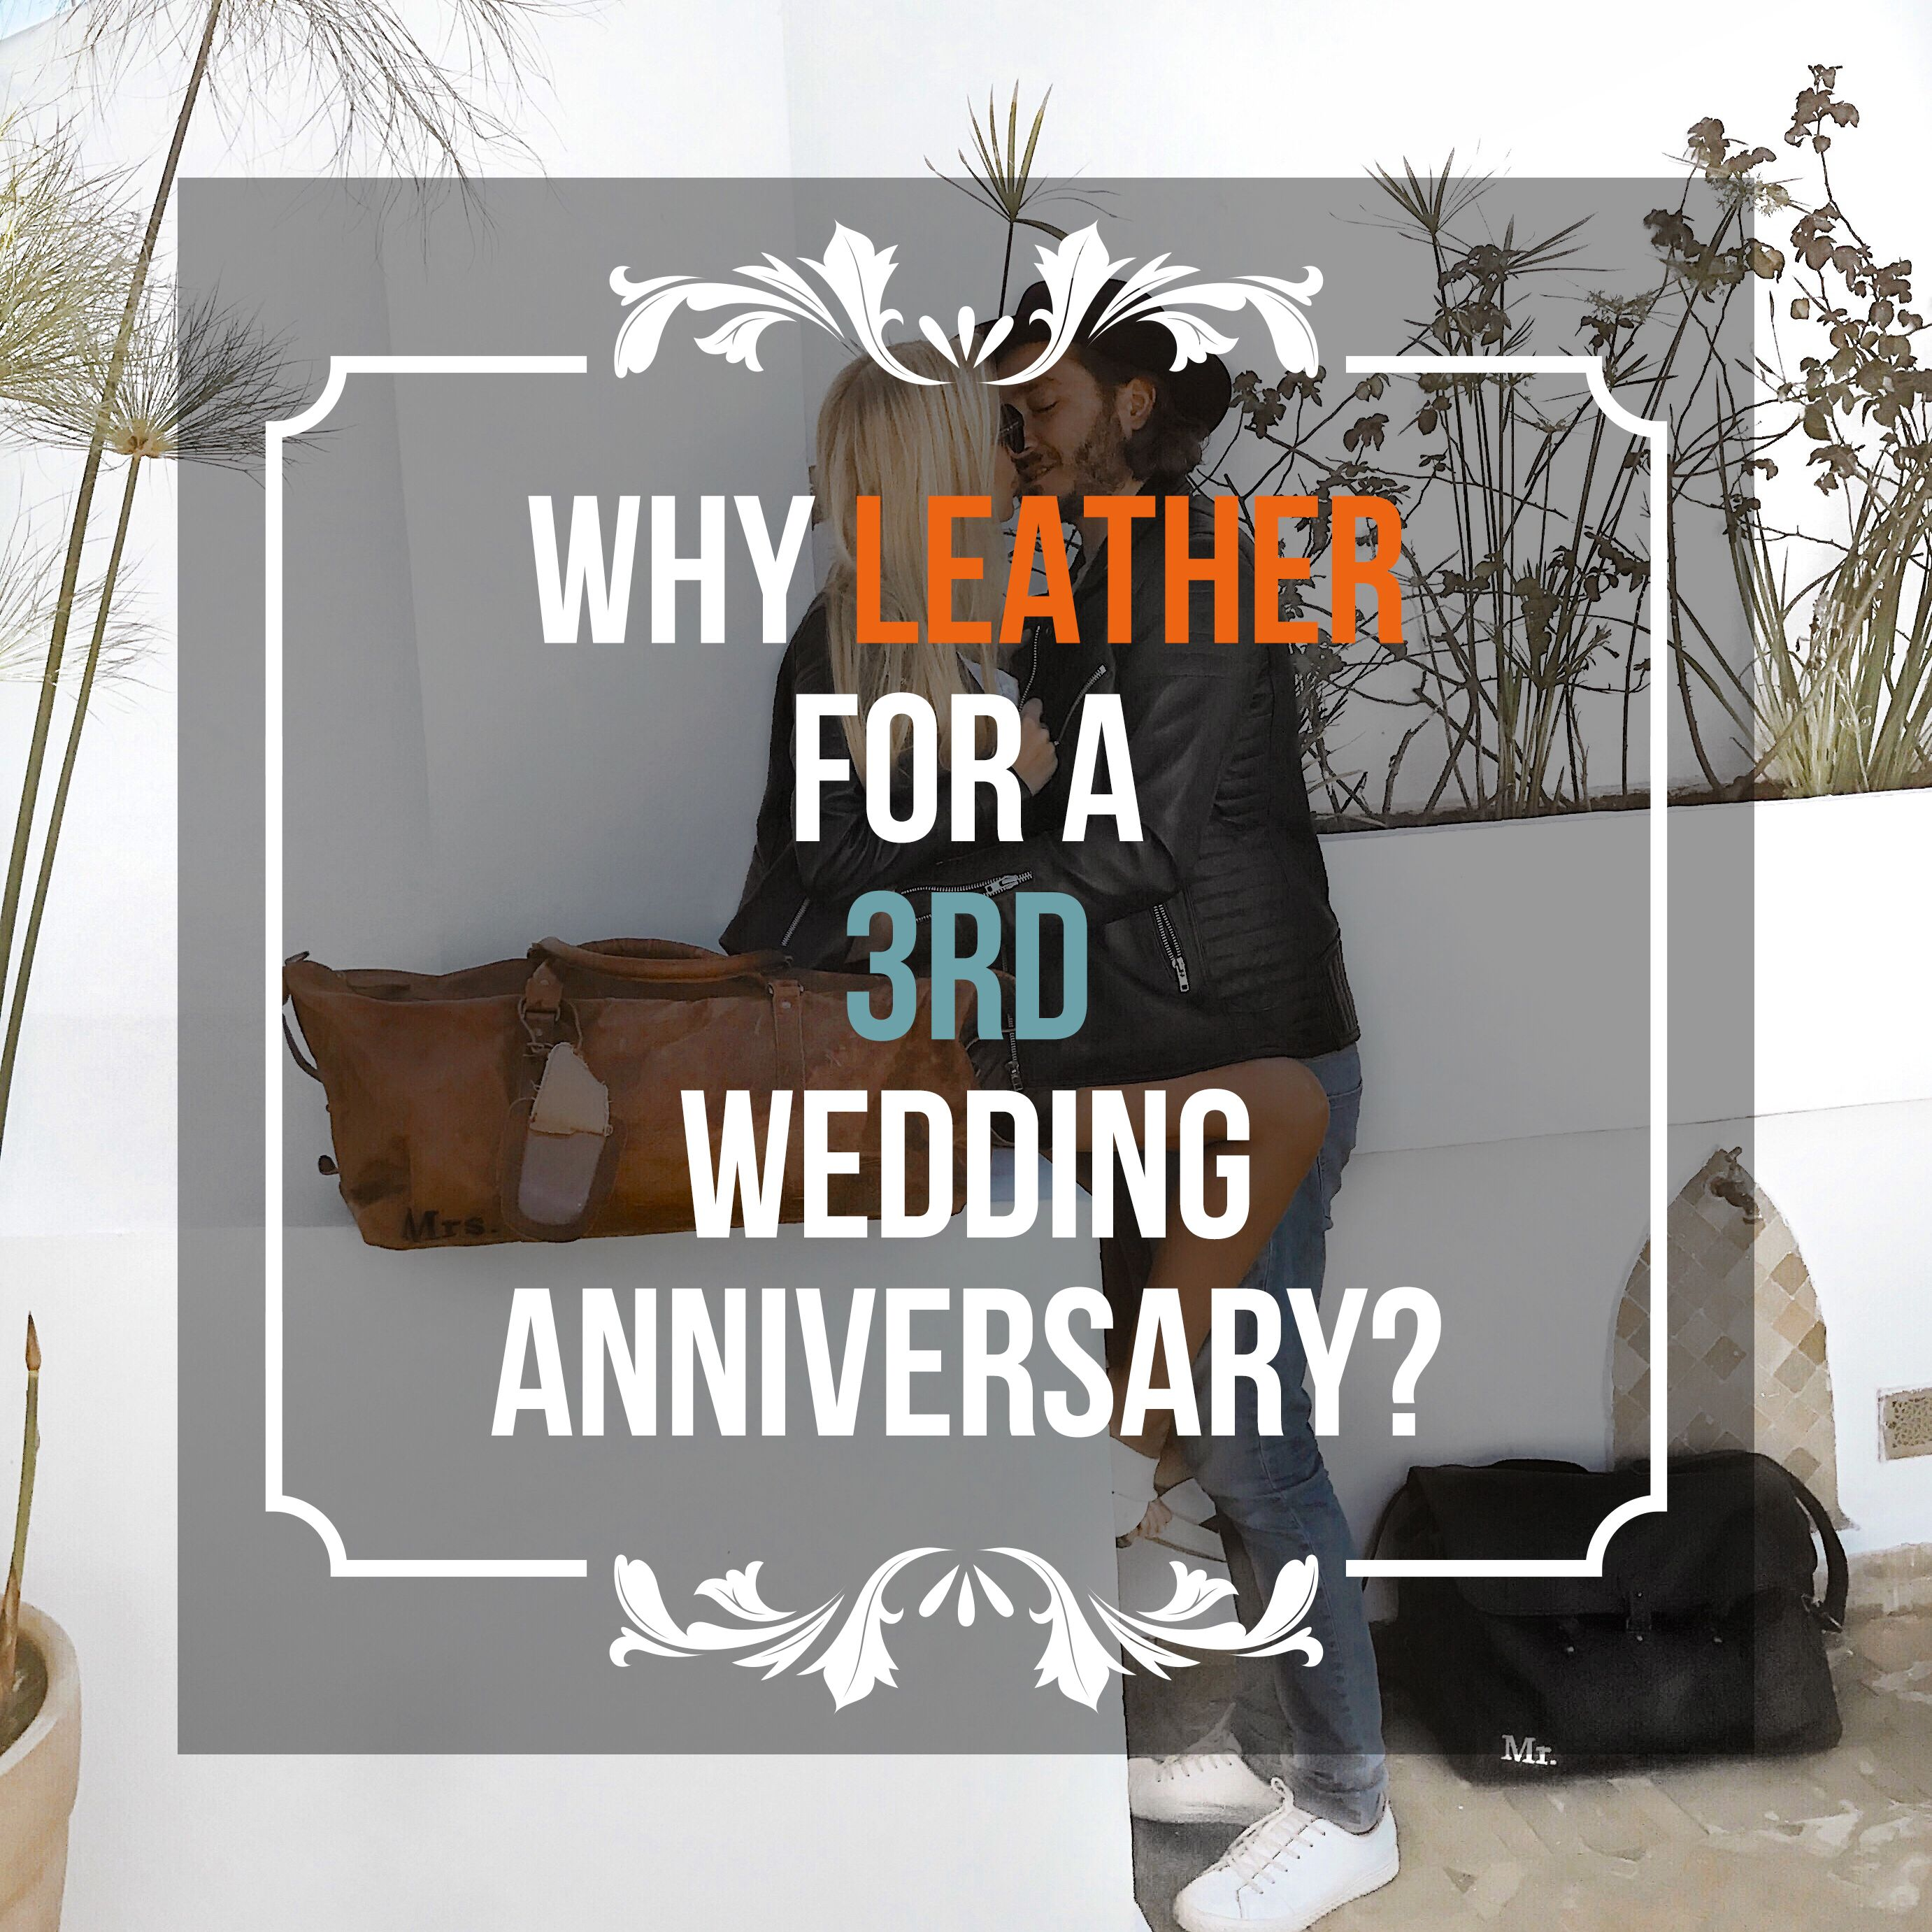 21st Wedding Anniversary Gifts For Her: Why Leather For A Third Wedding Anniversary?